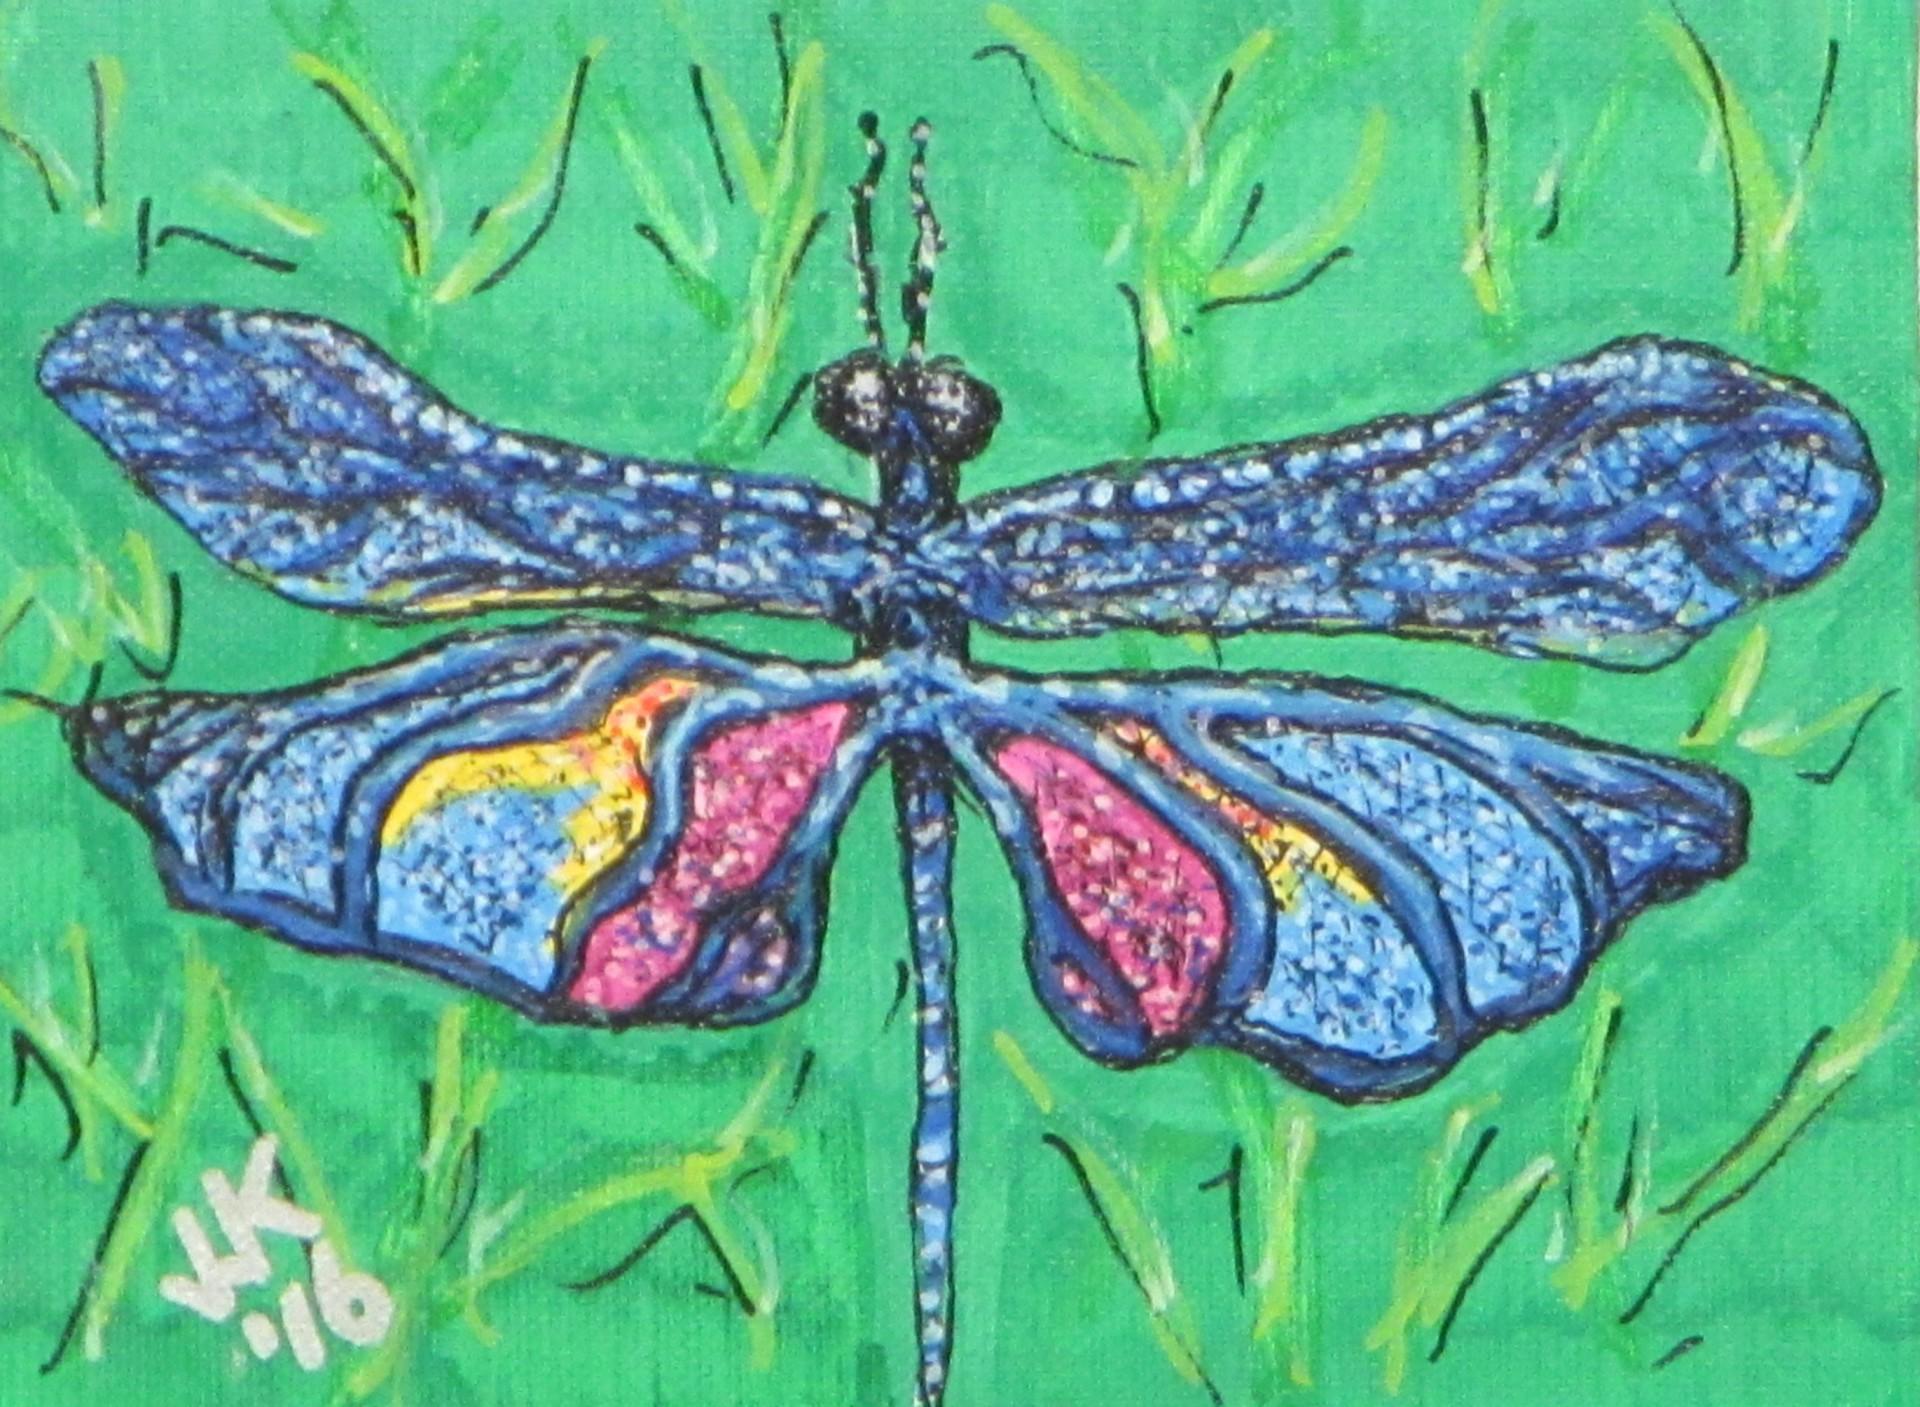 A blue and purple dragonfly.